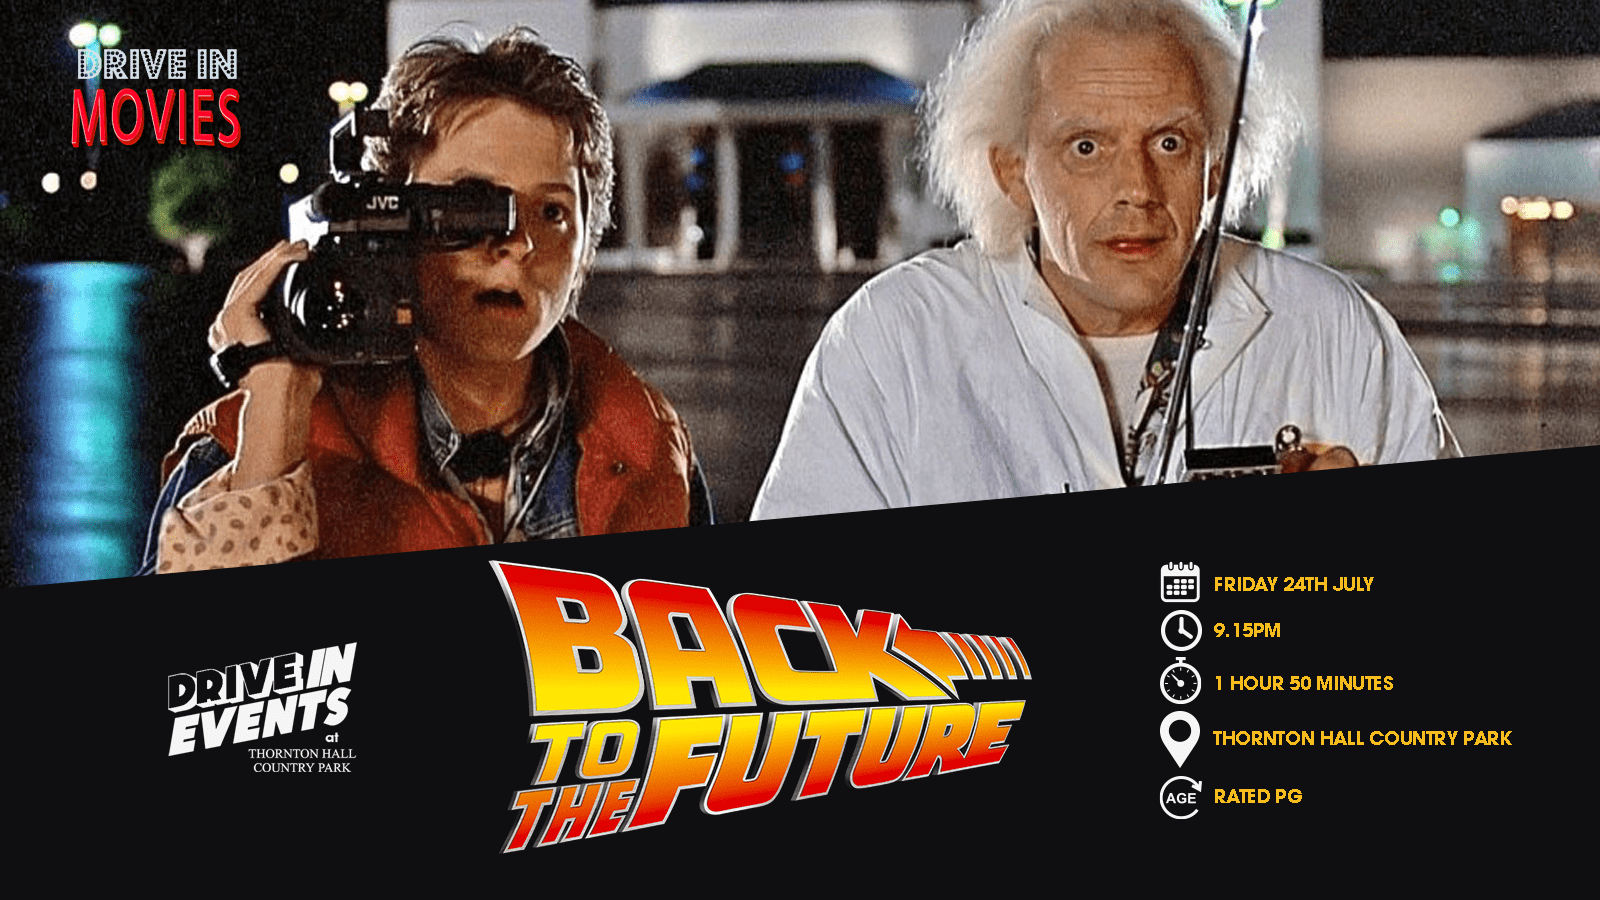 Back To The Future (Drive In Movie)